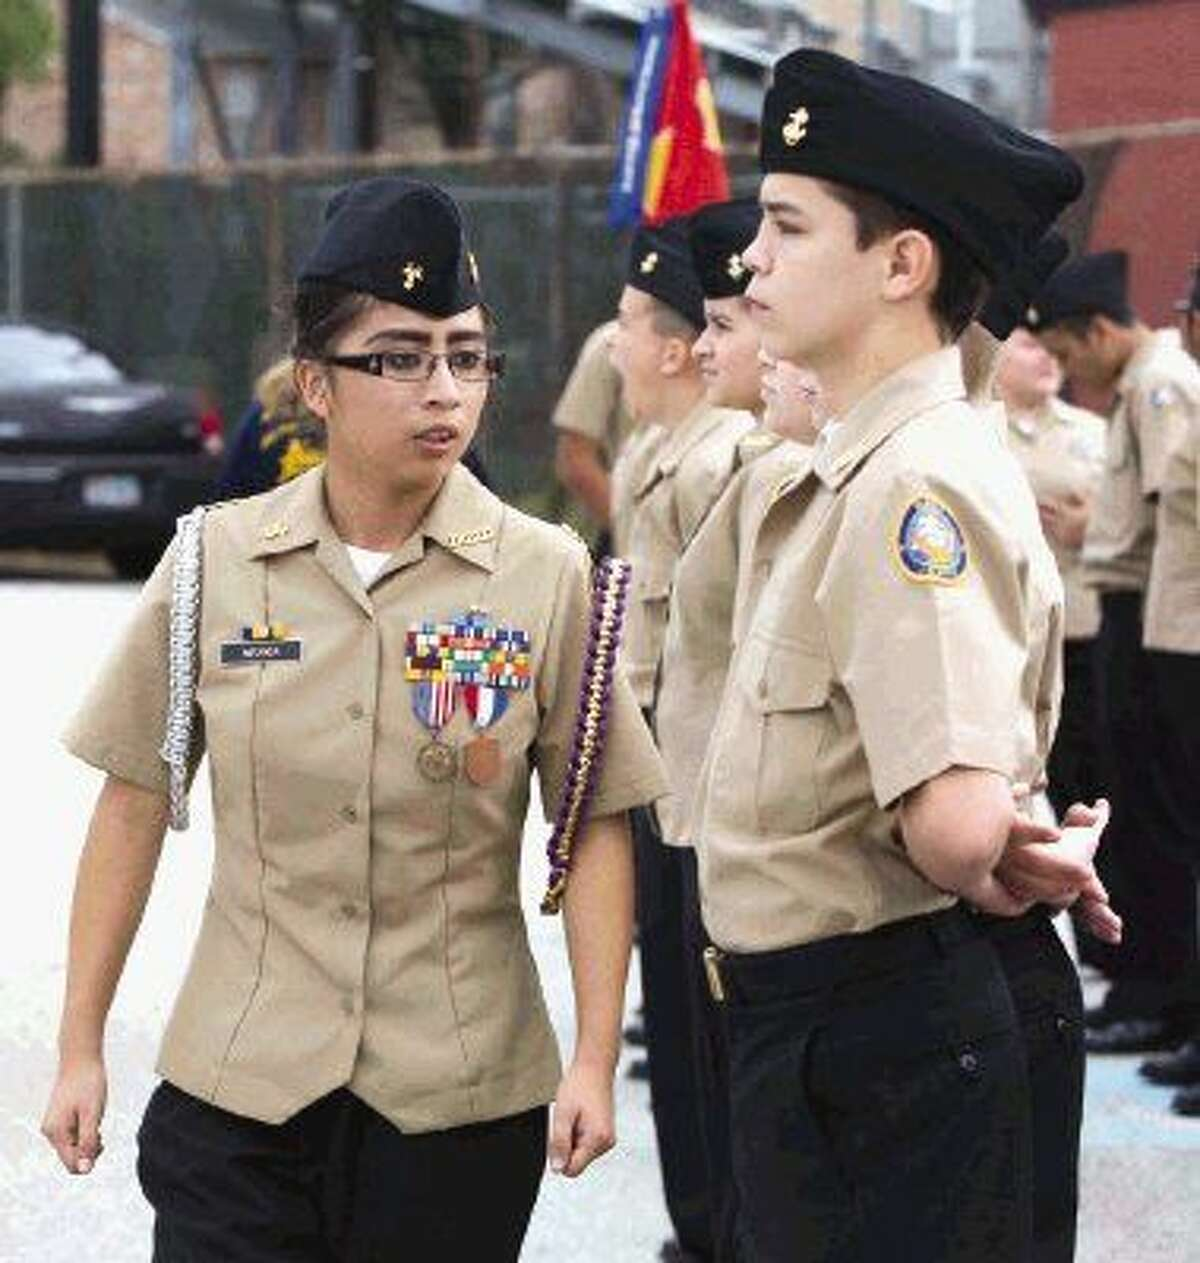 Caney Creek JROTC cadet Esoy Miranda inspects uniforms prior to the Veterans Day celebration at Moorhead Stadium Wednesday, Nov. 11, 2015. To view or purchase this photo and others like it, visit HCNpics.com.